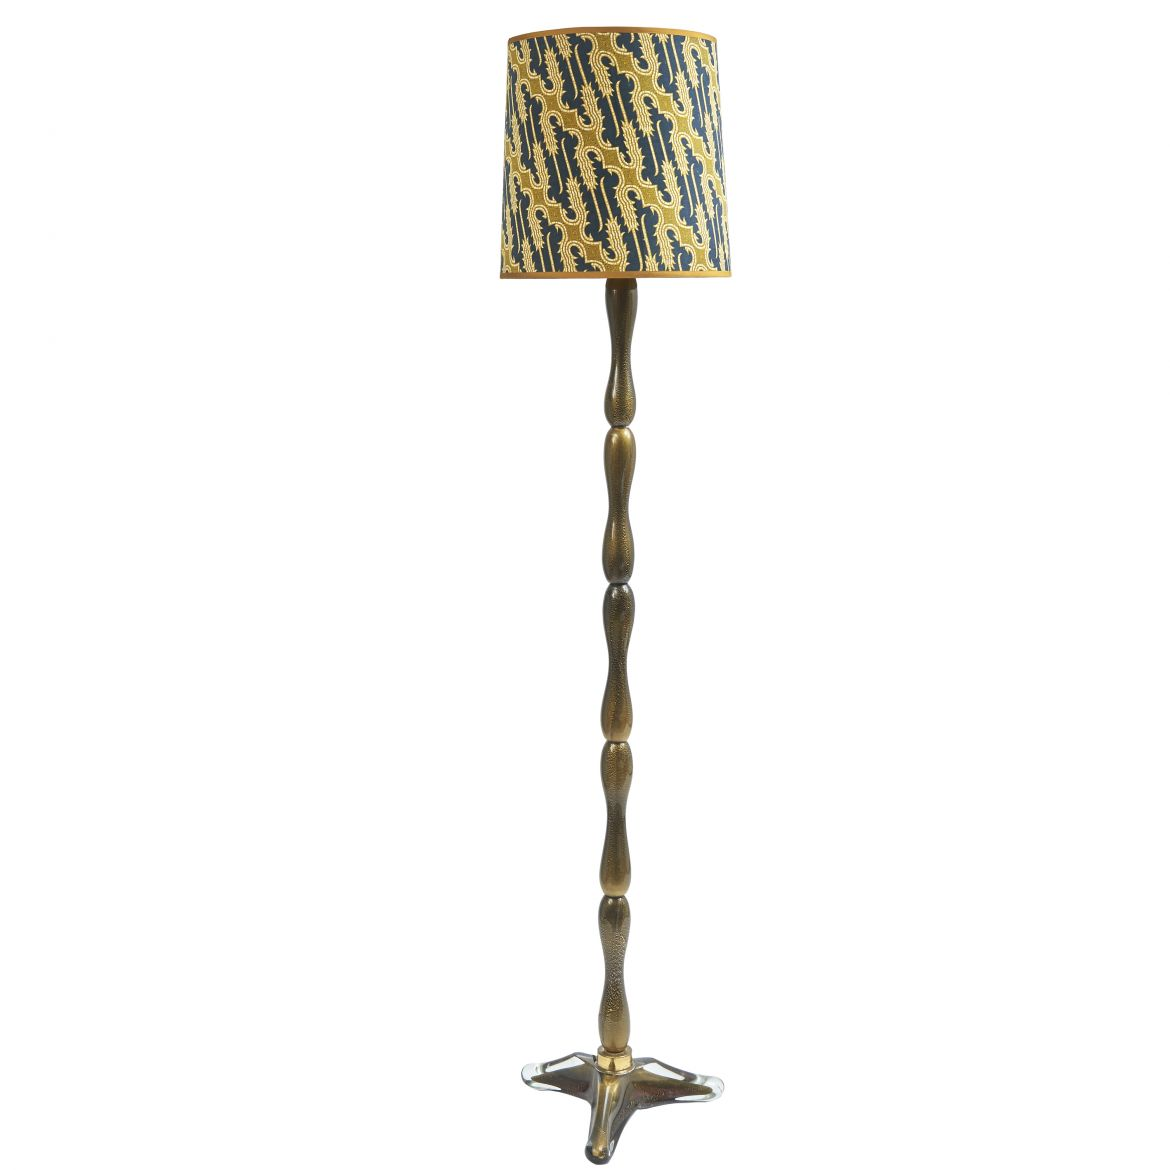 Murano Seguso Gold Speckled Standard Lamp